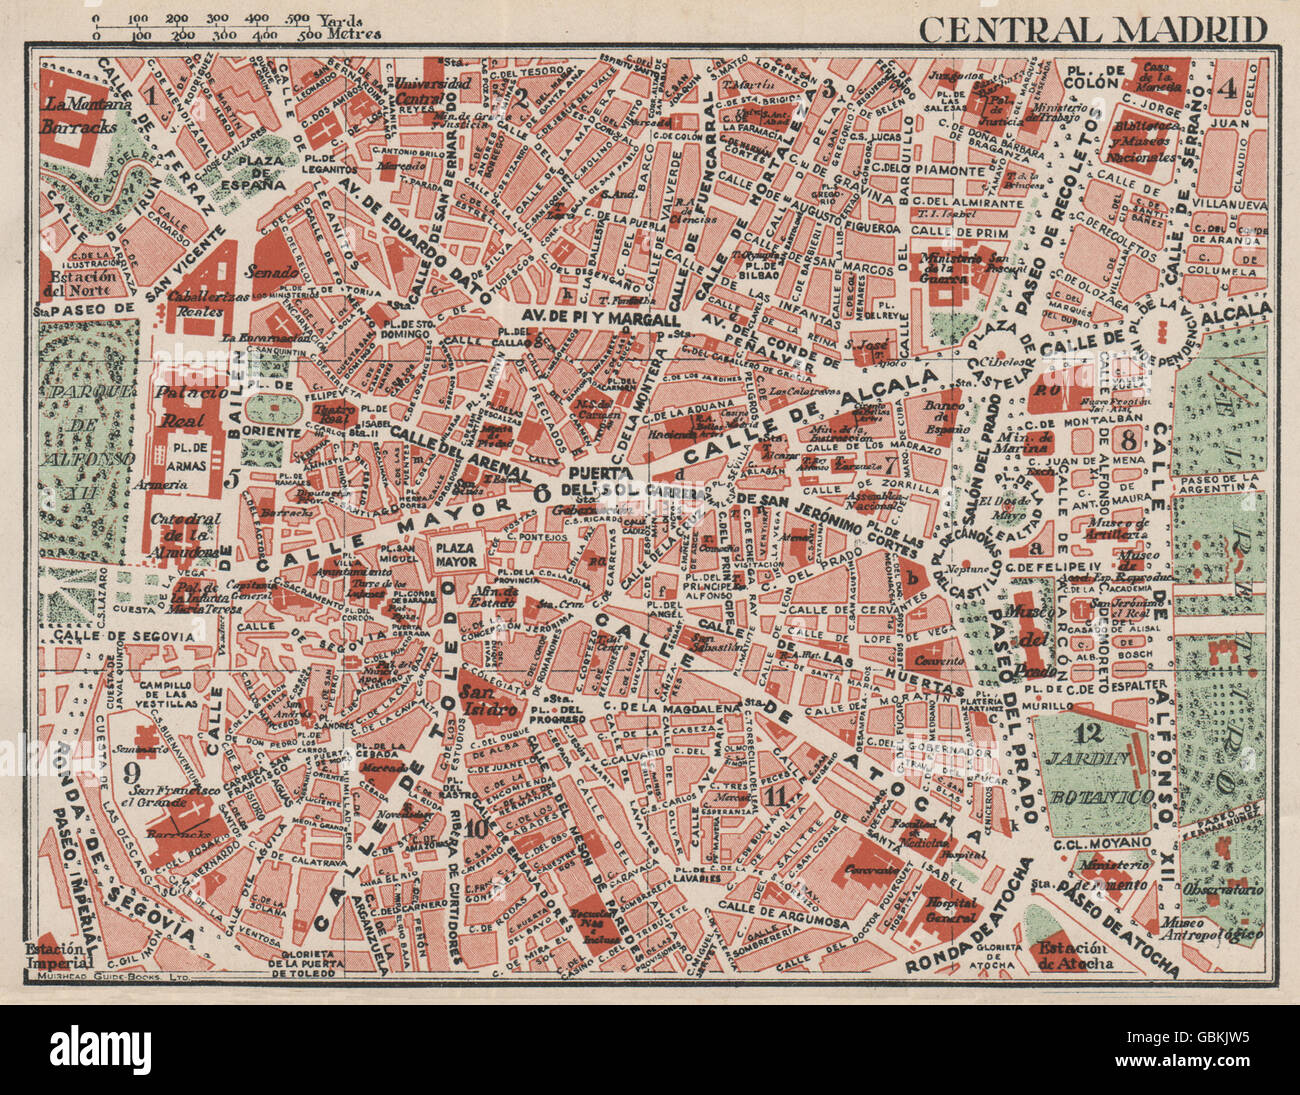 Map Of Spain 1930.Central Madrid Vintage Town City Map Plan Spain 1930 Stock Photo